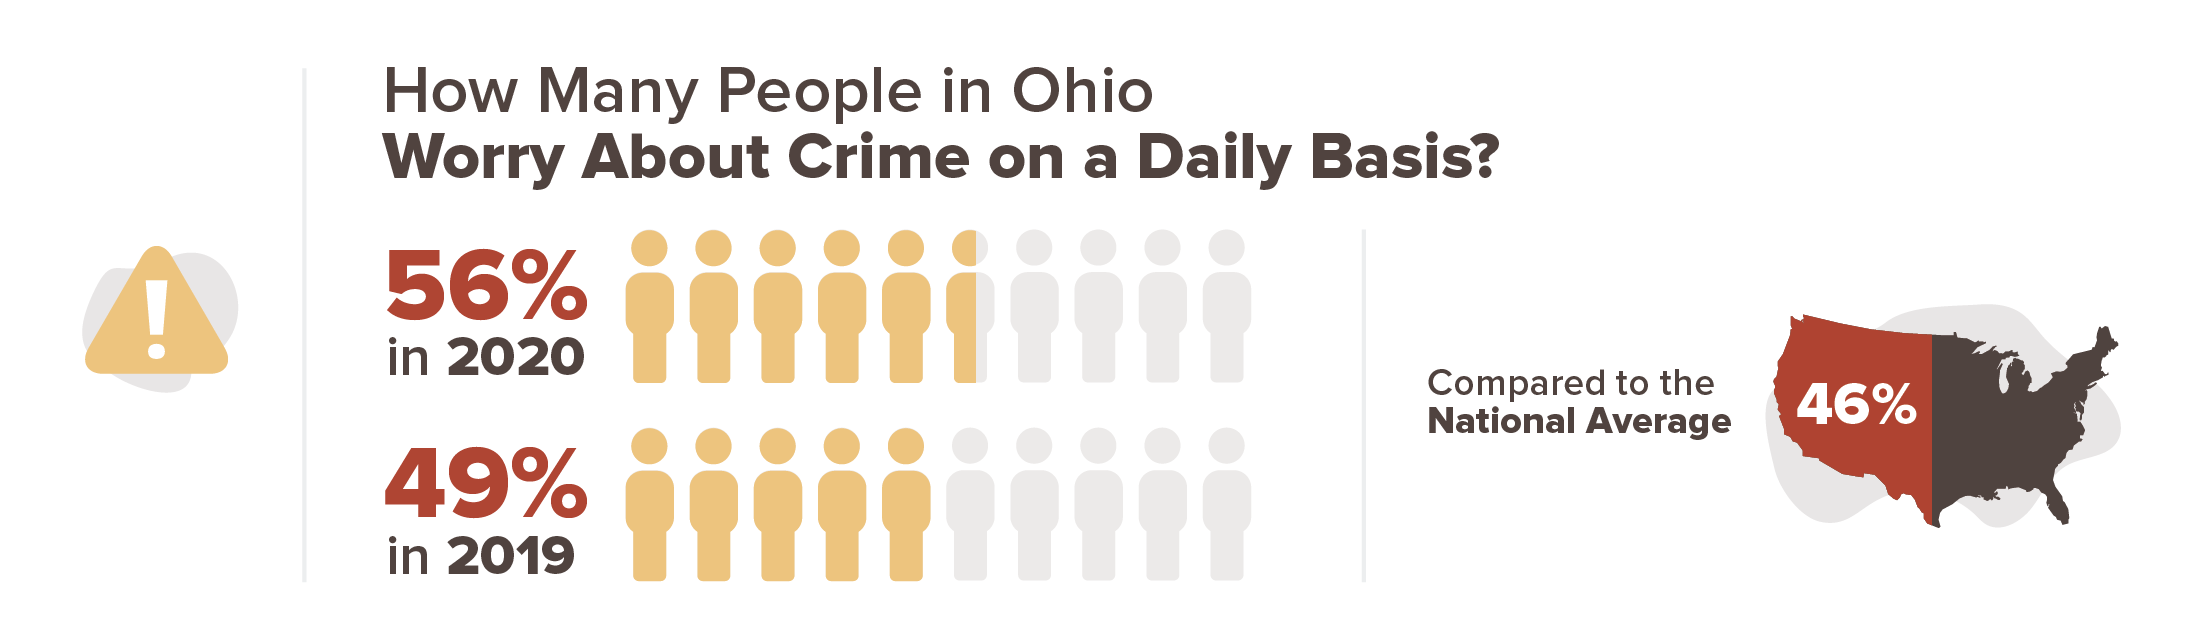 Ohio crime stats infographic